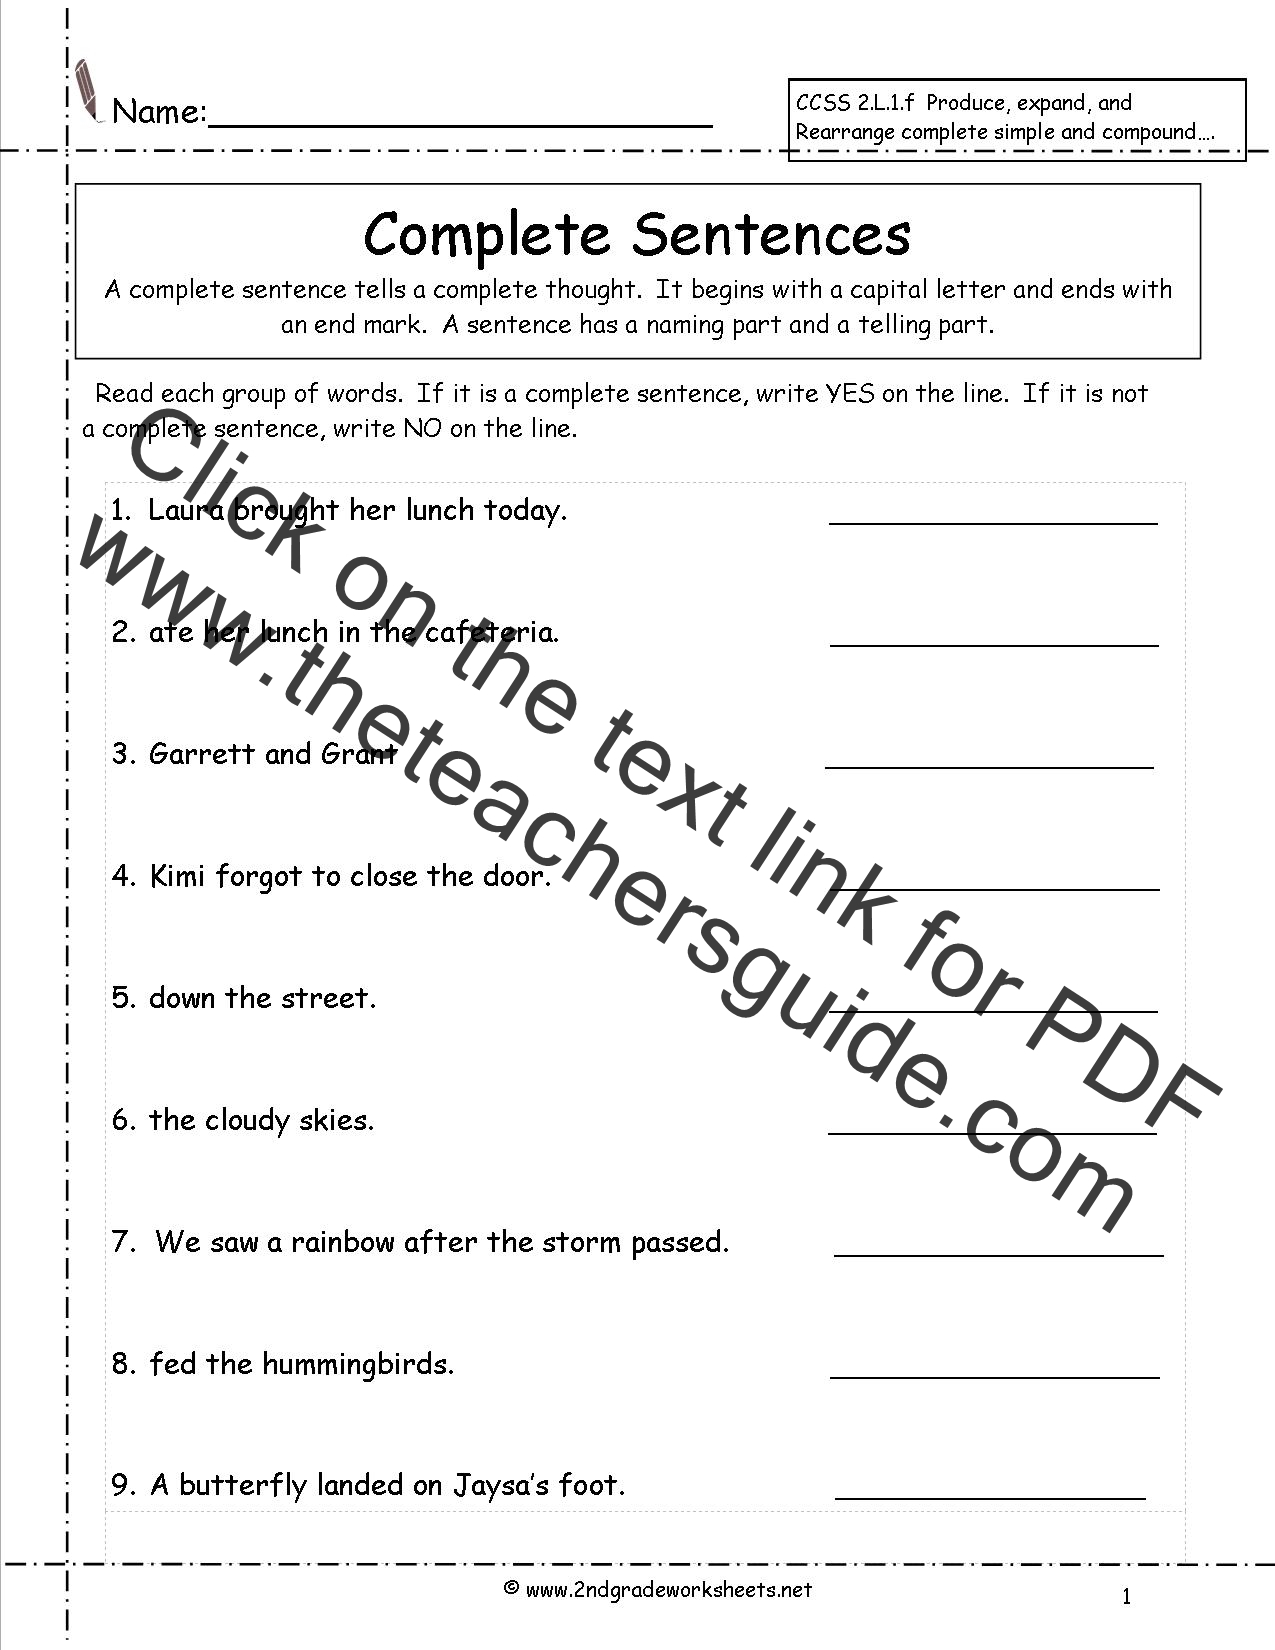 Worksheet Sentence Correction Worksheets second grade sentences worksheets ccss 2 l 1 f complete worksheets